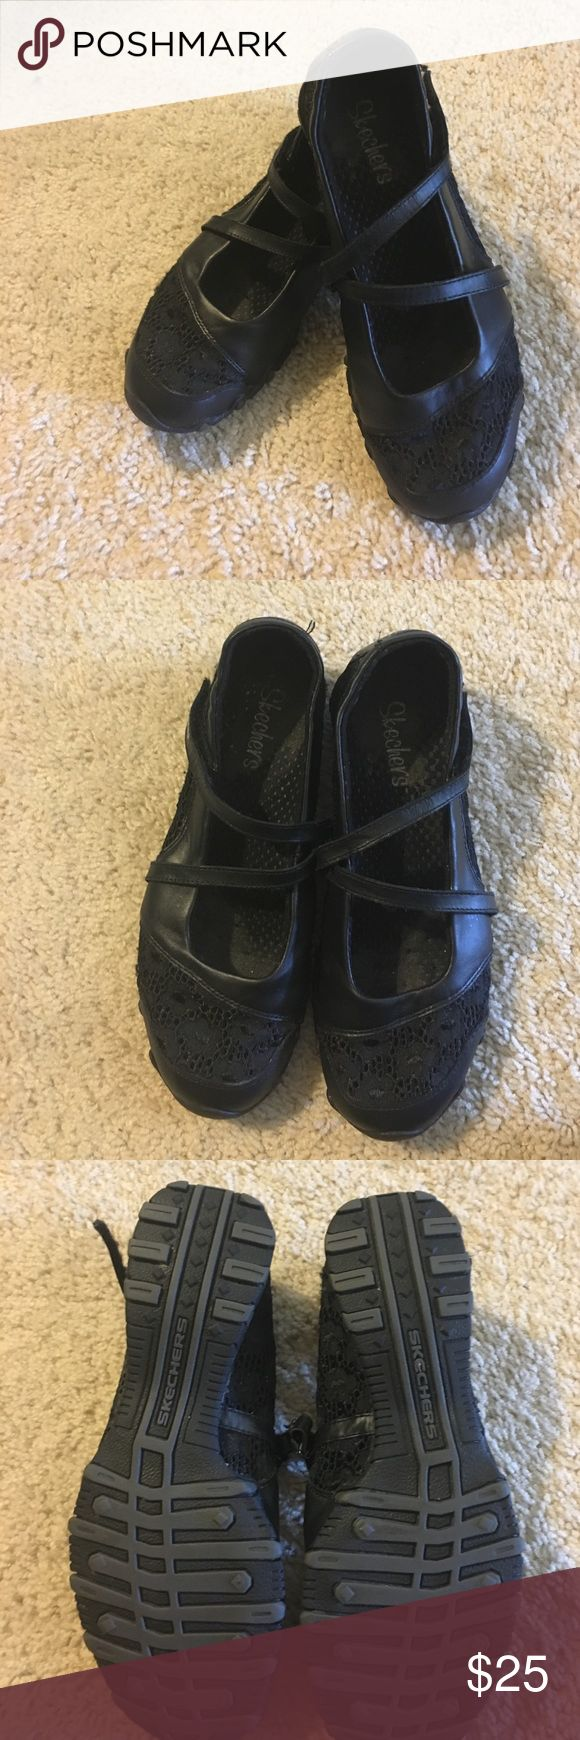 Skechers Mary Janes with Velcro straps Black leather with lace accents.  Size 7.5 in very good condition.  Dress up or down with these comfy shoes Skechers Shoes Flats & Loafers